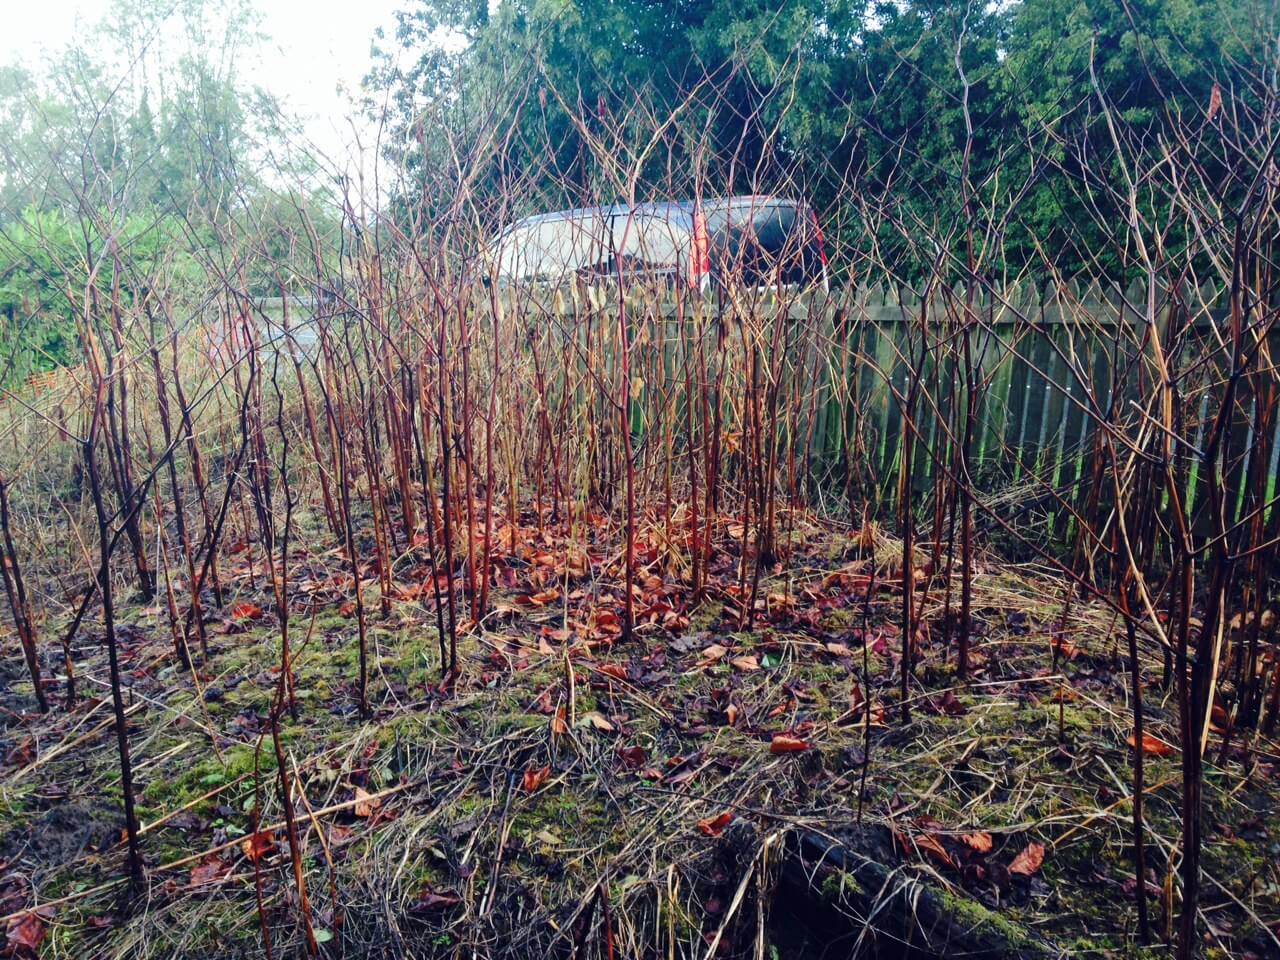 Japanese Knotweed in Winter